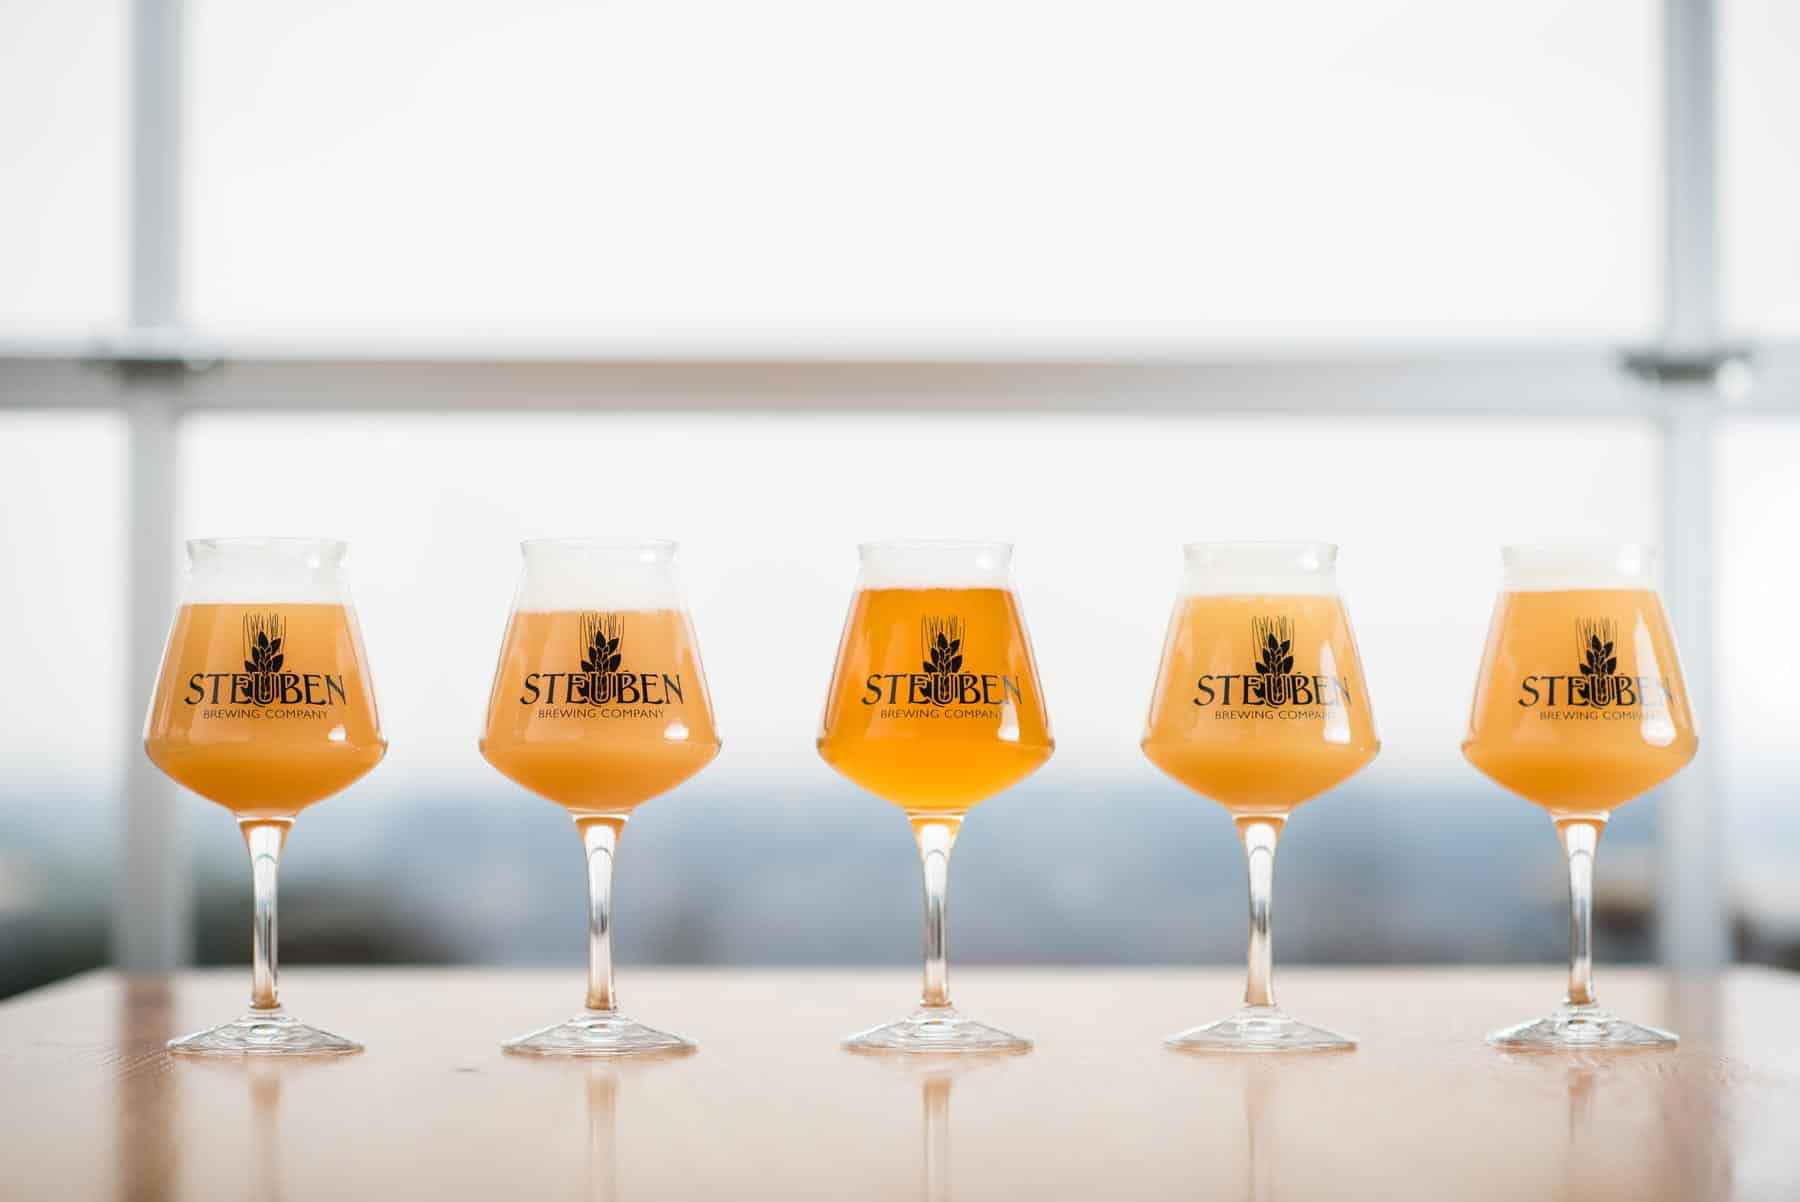 SteubenBrewing home age beer lineup - Home